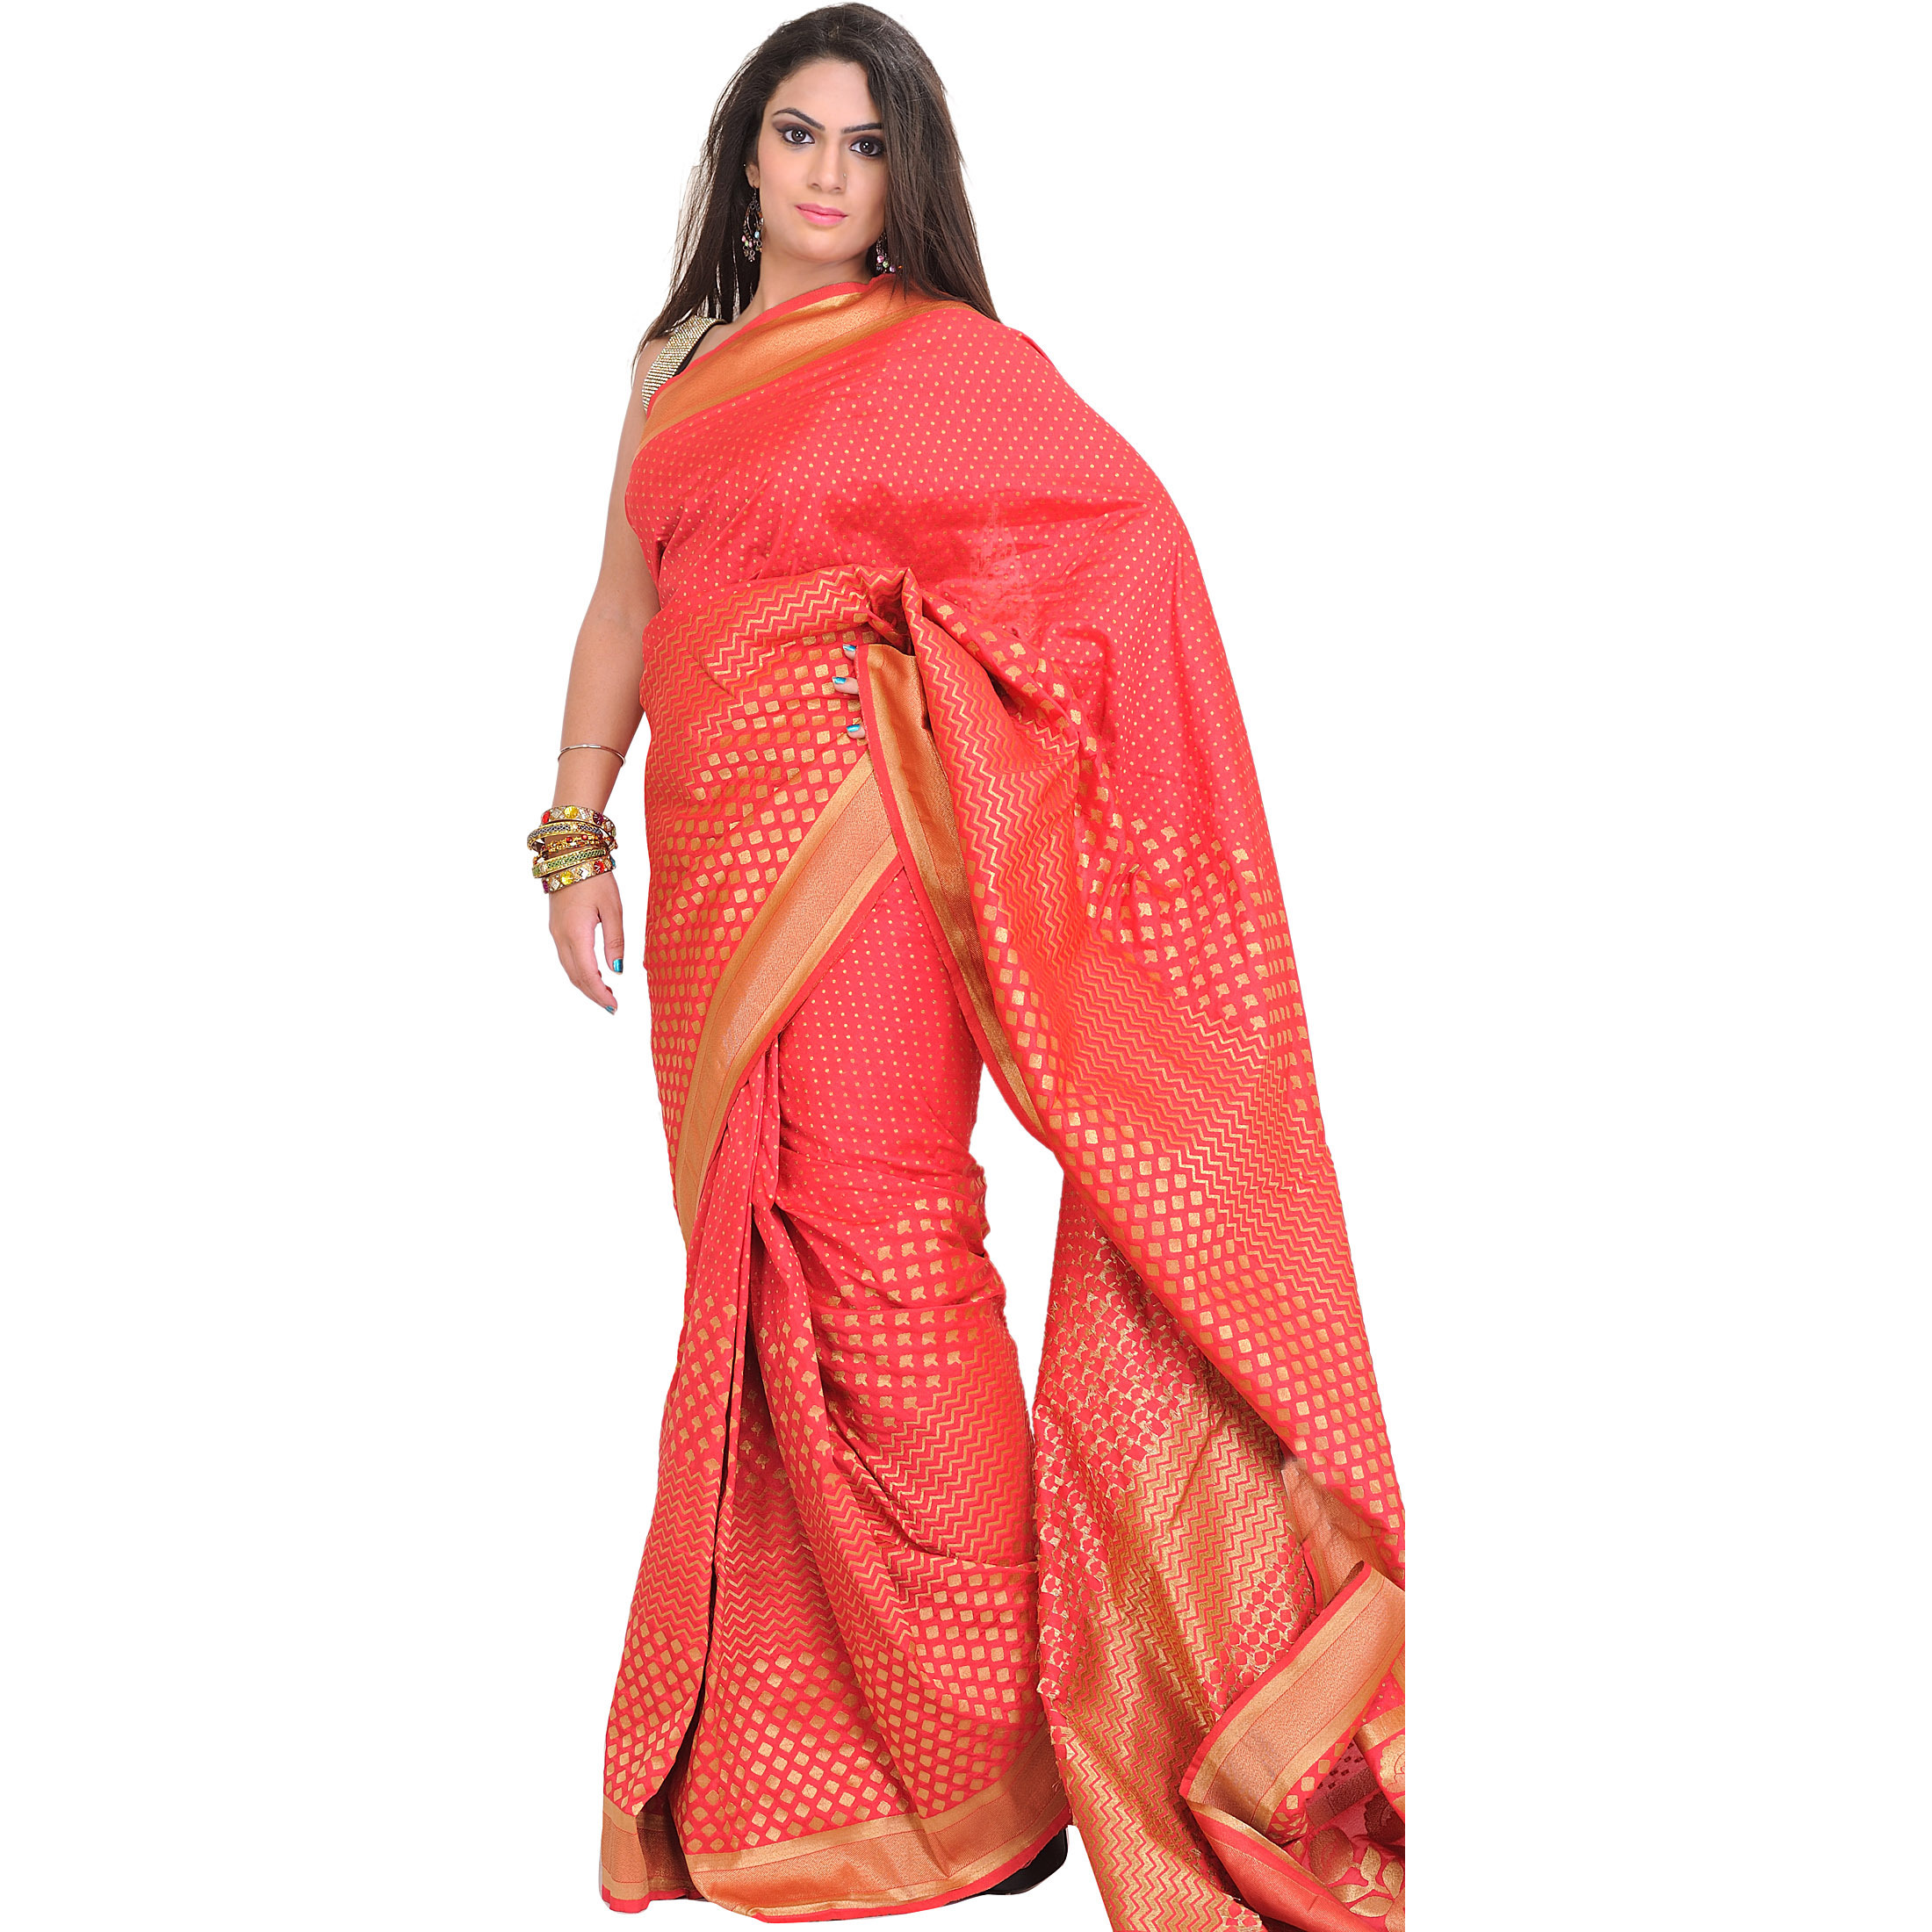 Rouge-Red Sari from Banaras with Woven Bootis in Zari Thread